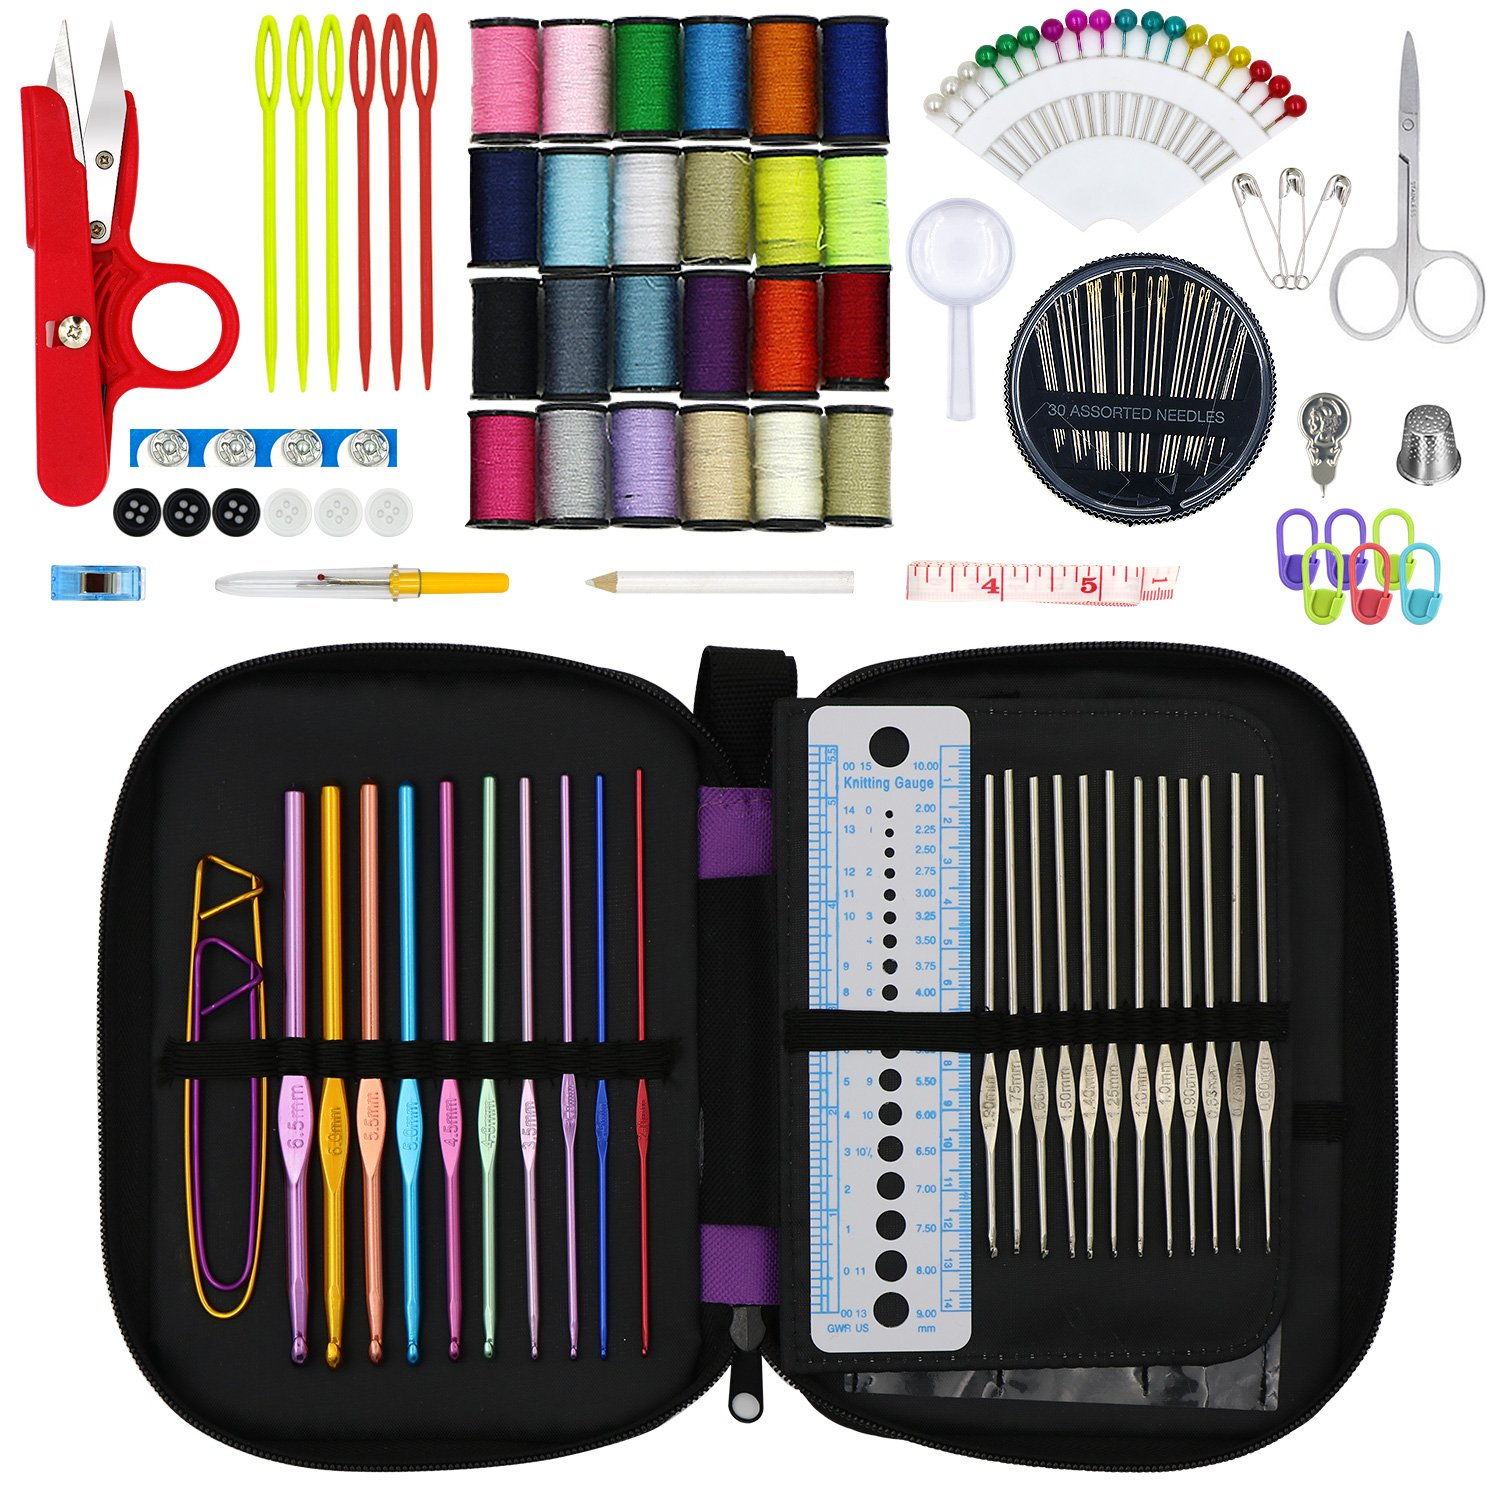 Hiveseen 132PCs Crochet Hooks Set, Complete Accessories with Case, Different Size Knitting Needles-(Metal 0.6-1.9mm , Coloured Aluminium 2.0-6.5mm), Sew Weave Craft Tool for Beginner and Professional Yunguihui